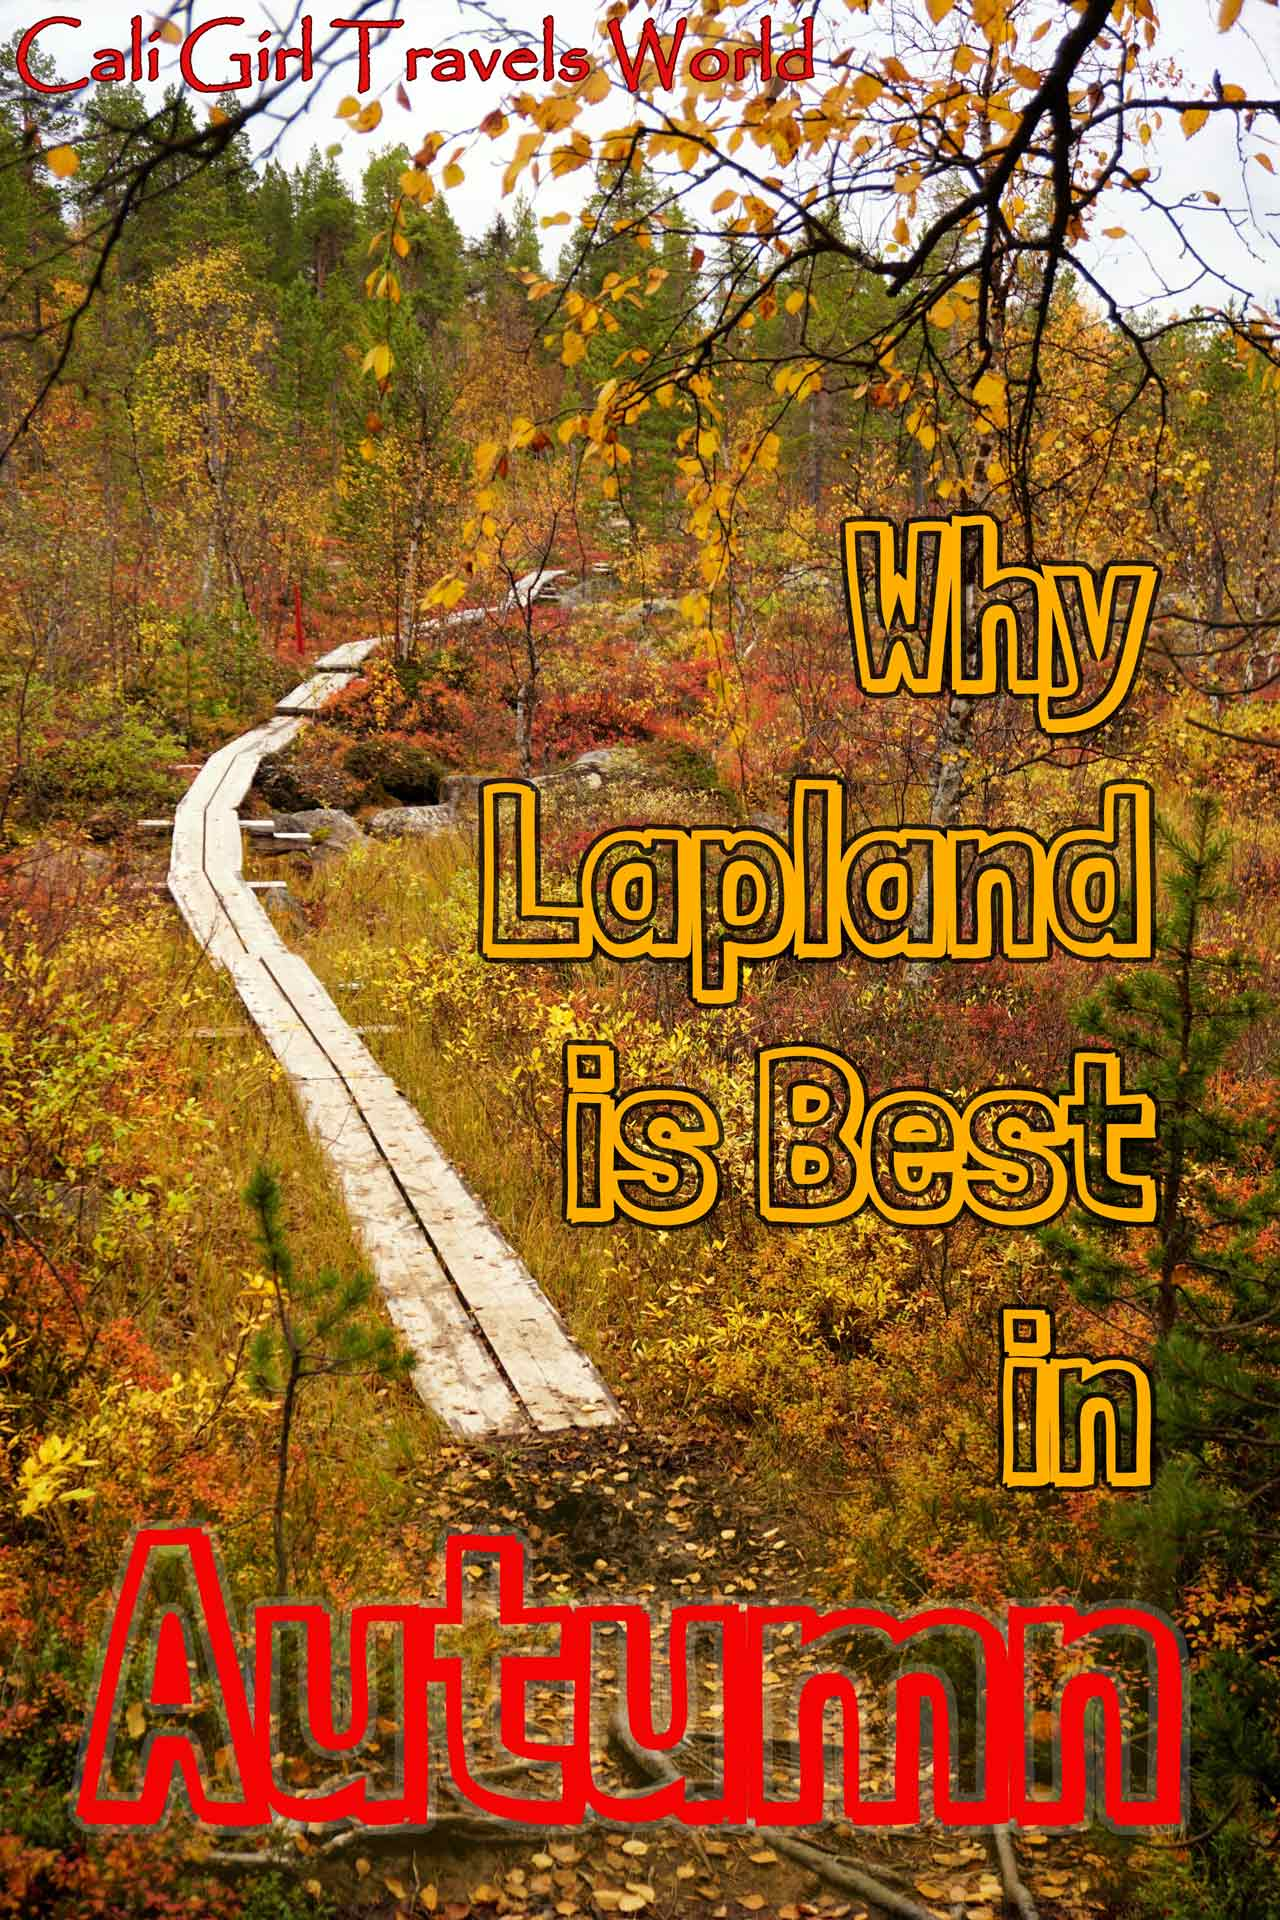 Pinterest Pin for a travel blog article about Lapland, Finland in autumn